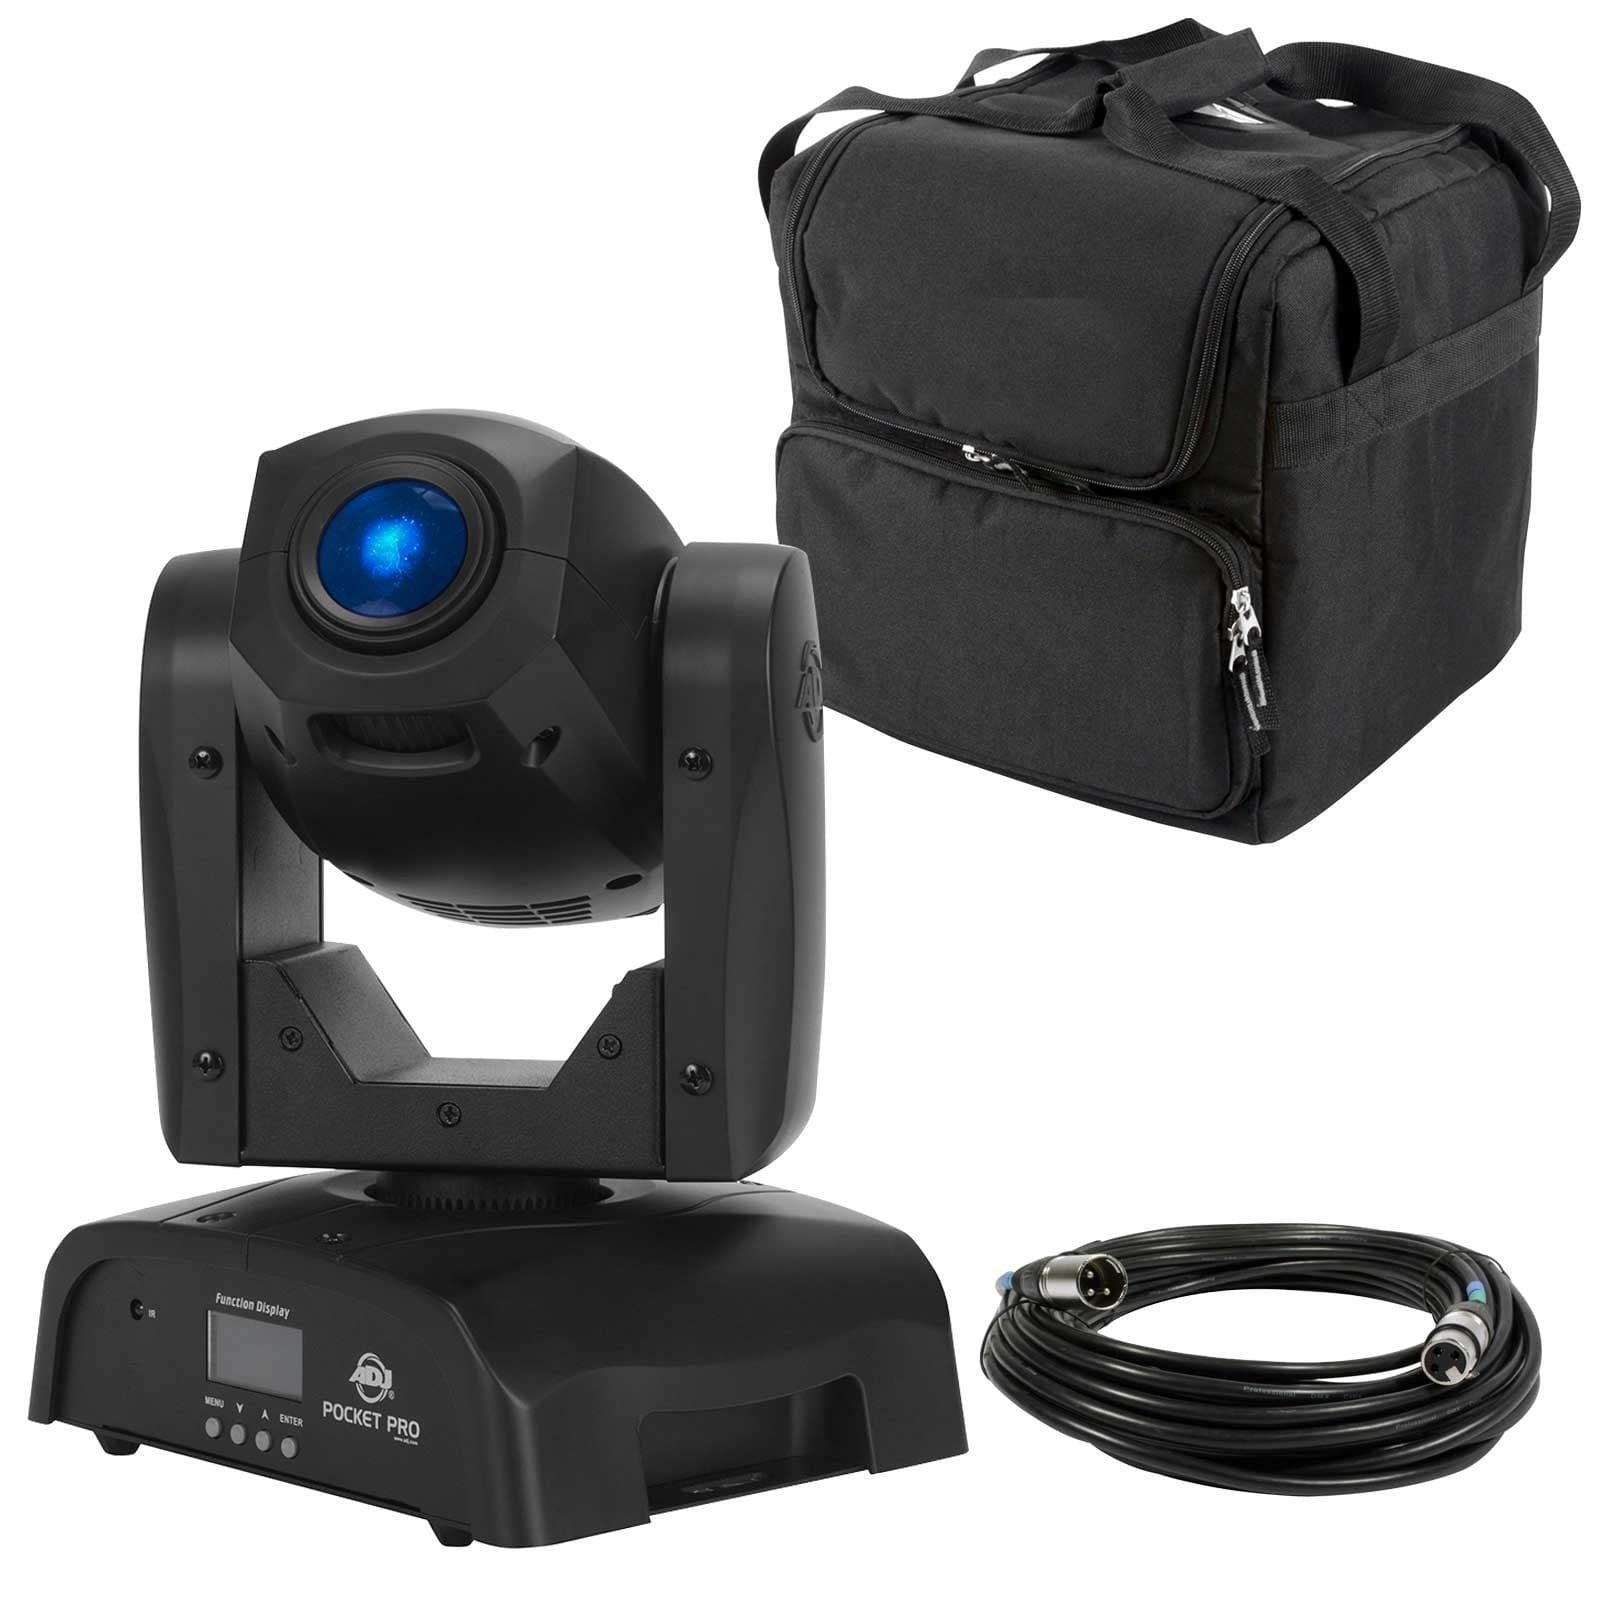 american-dj-pocket-pro-high-output-mini-moving-head-with-carry-bag-package-646